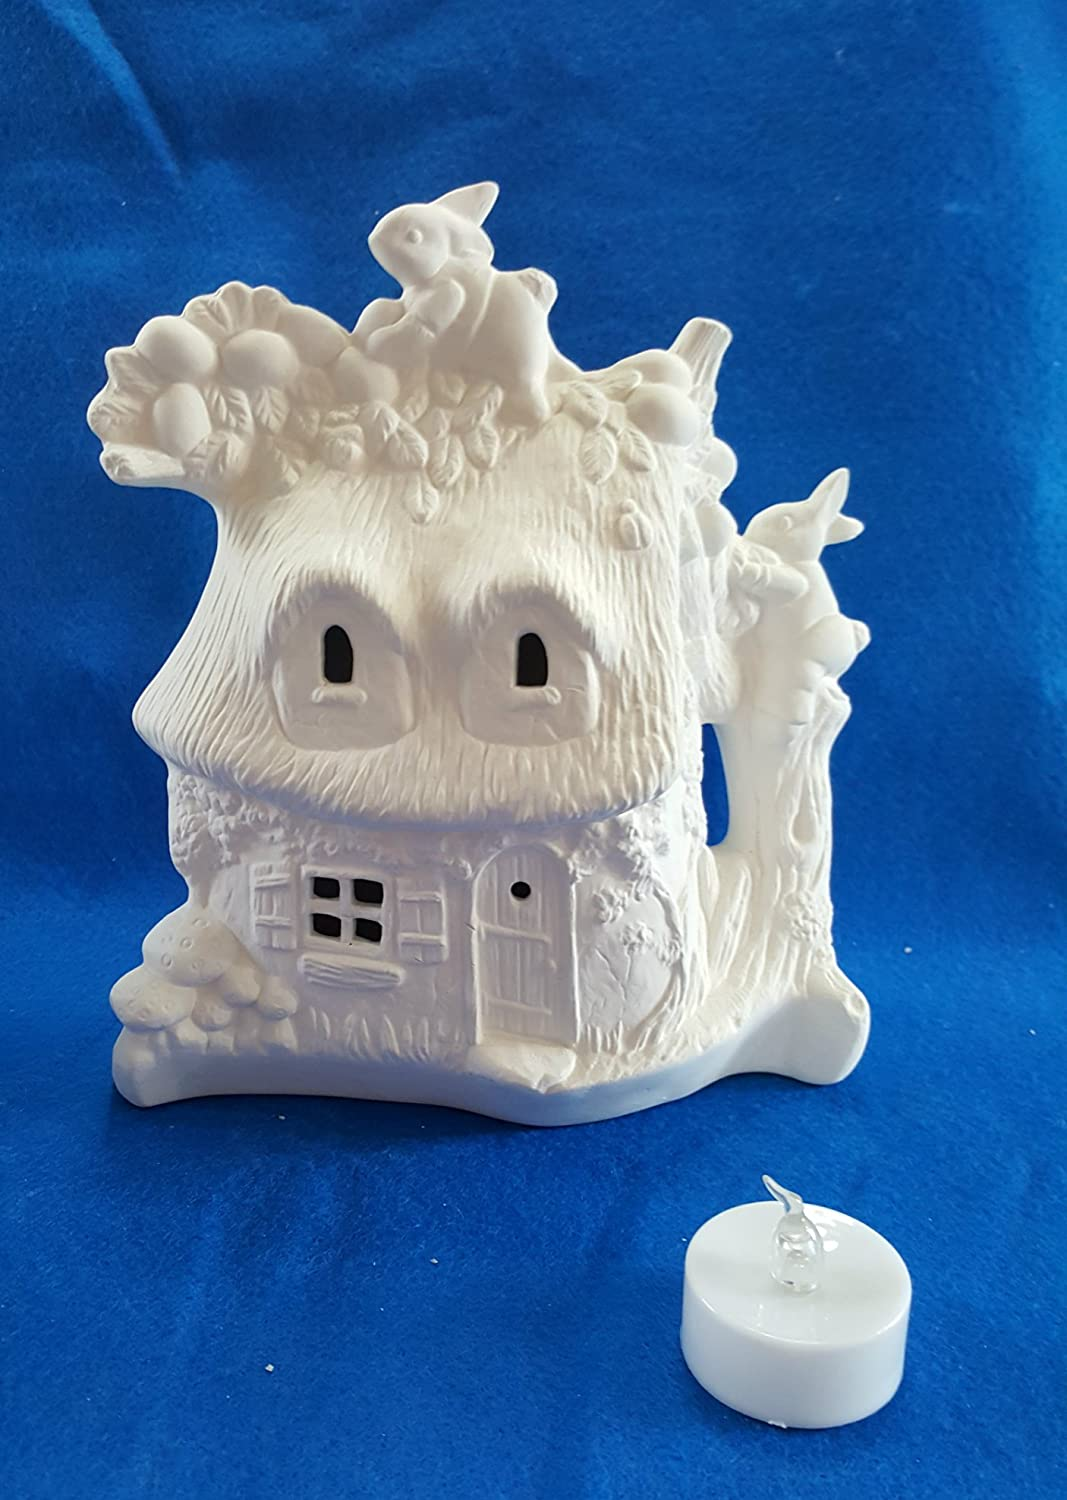 Easter Bunny Rabbit Thatched Roof Cottage KIT windows cut out and light unpainted ceramic bisque ready to be painted